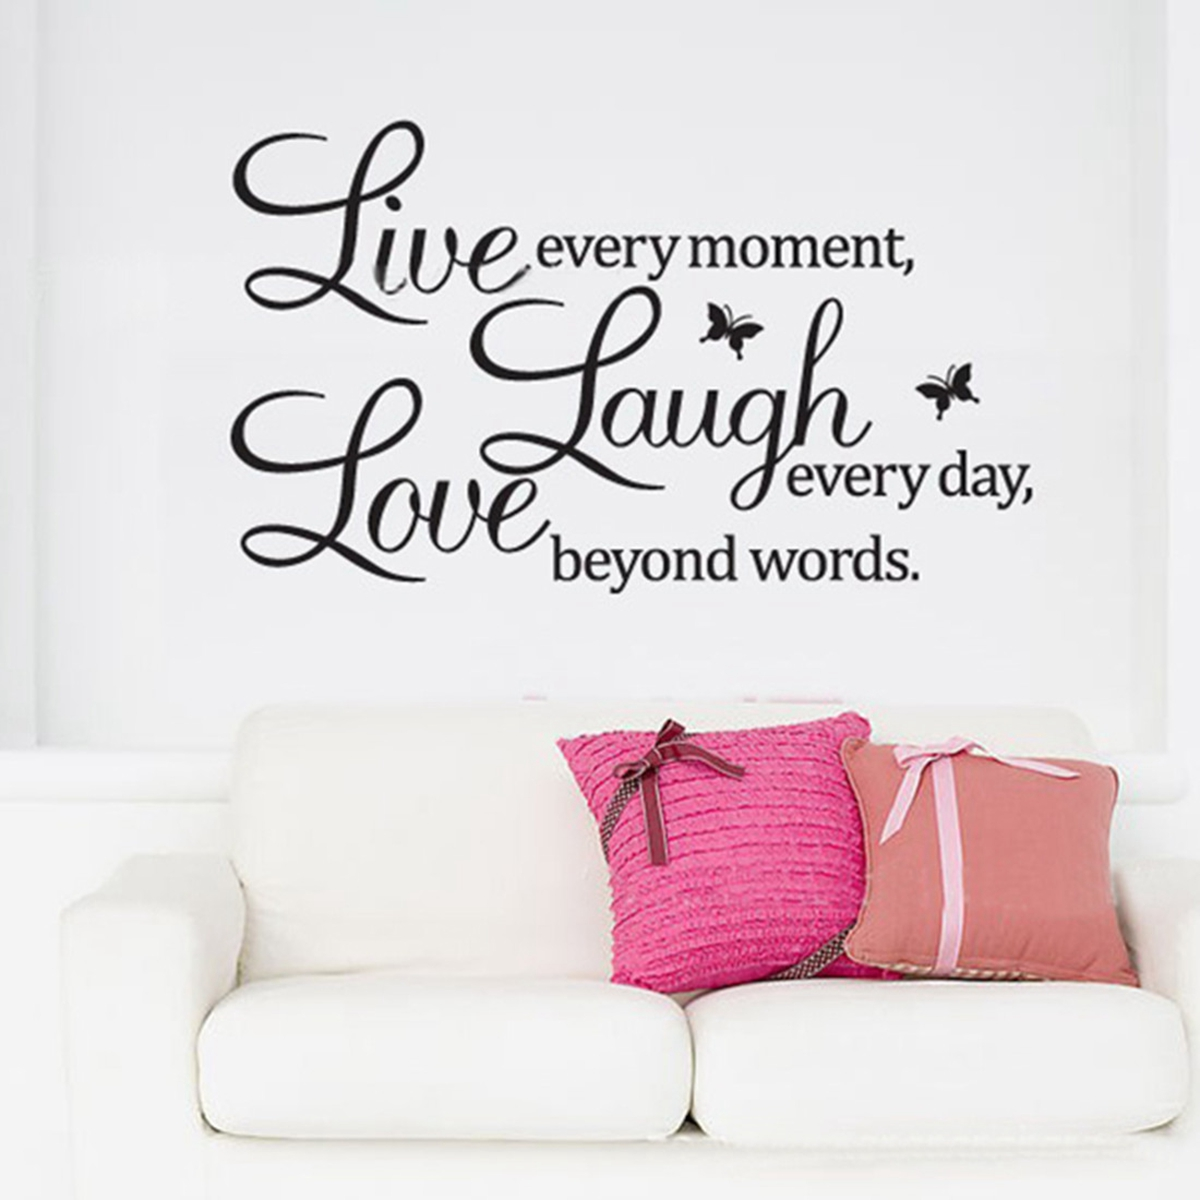 Vinyl Home Room Decor Art Quote Wall Decal Stickers Bedroom - Wall stickers for bedroom